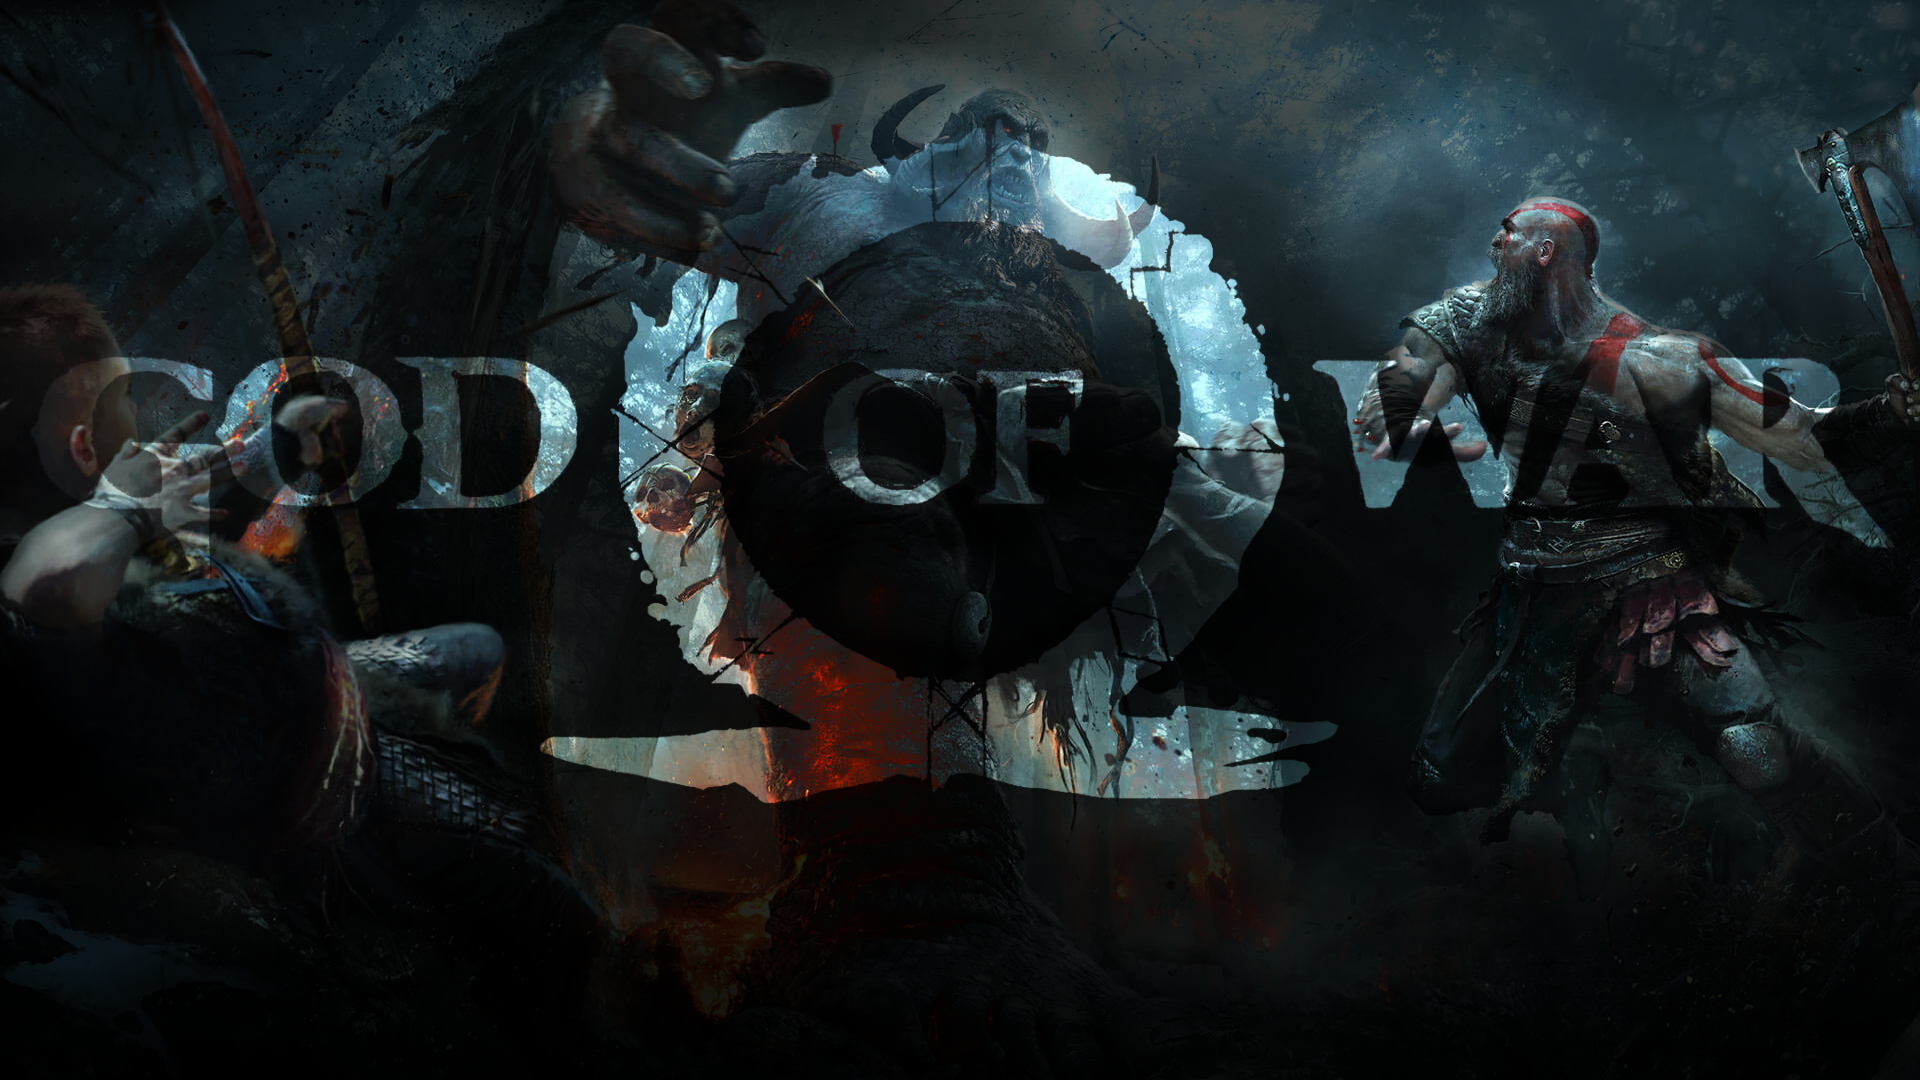 God Of War Ps4 Wallpaper 1080p By Claterz God Of War Guerreiro